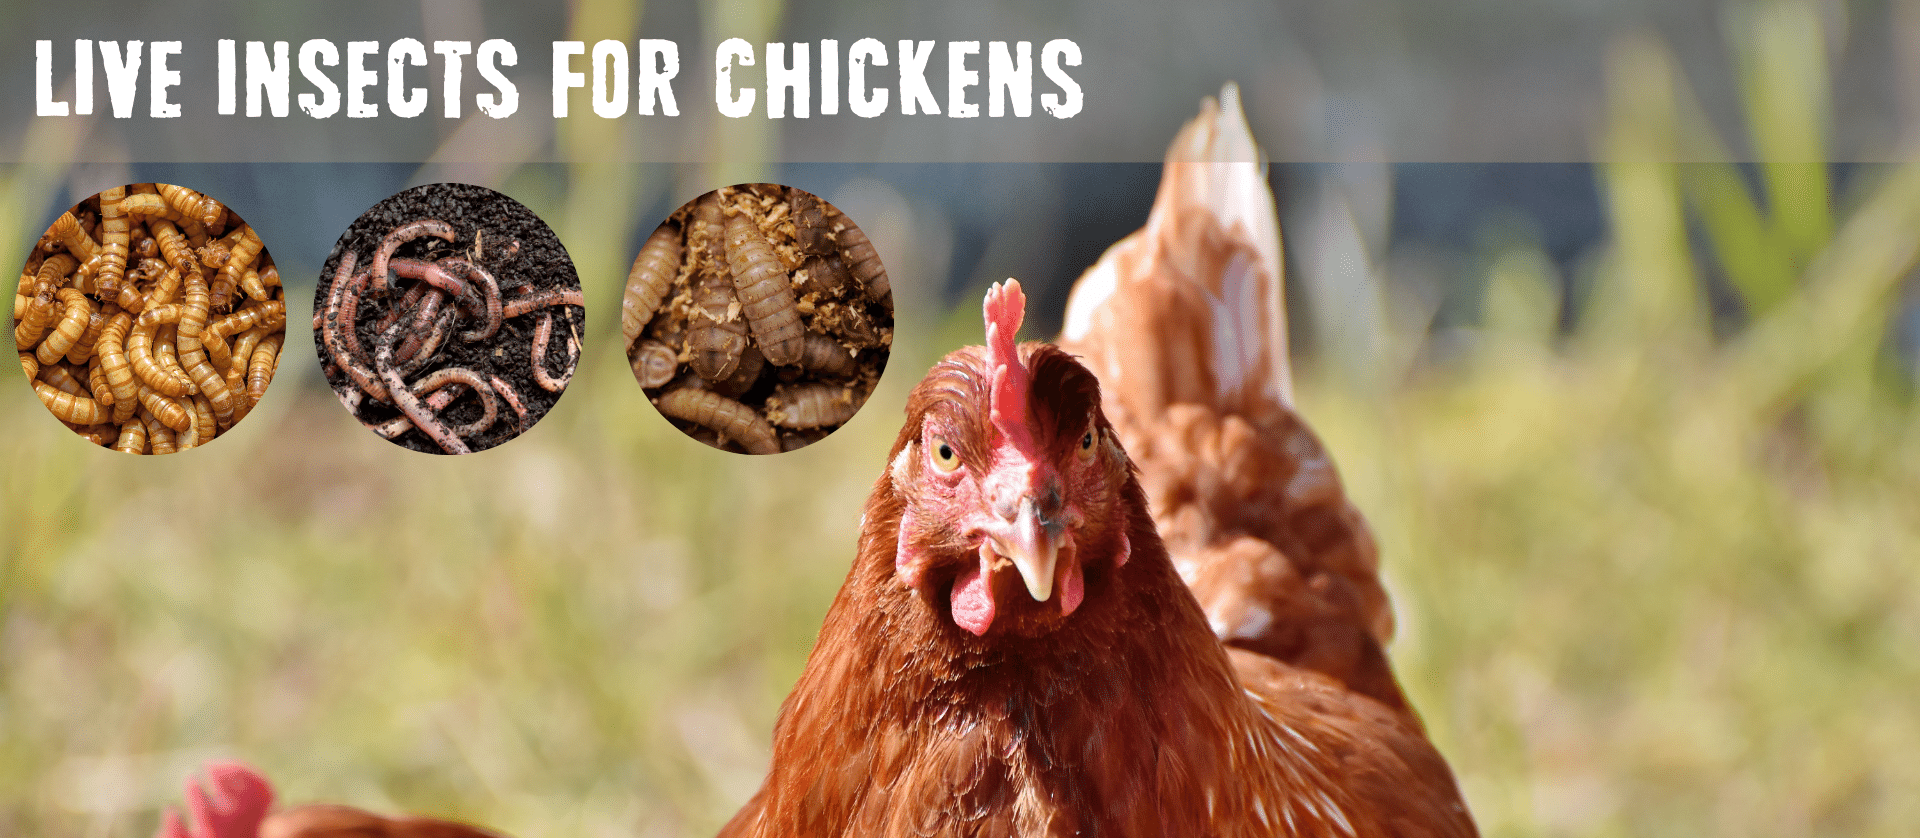 Live insects for chickens